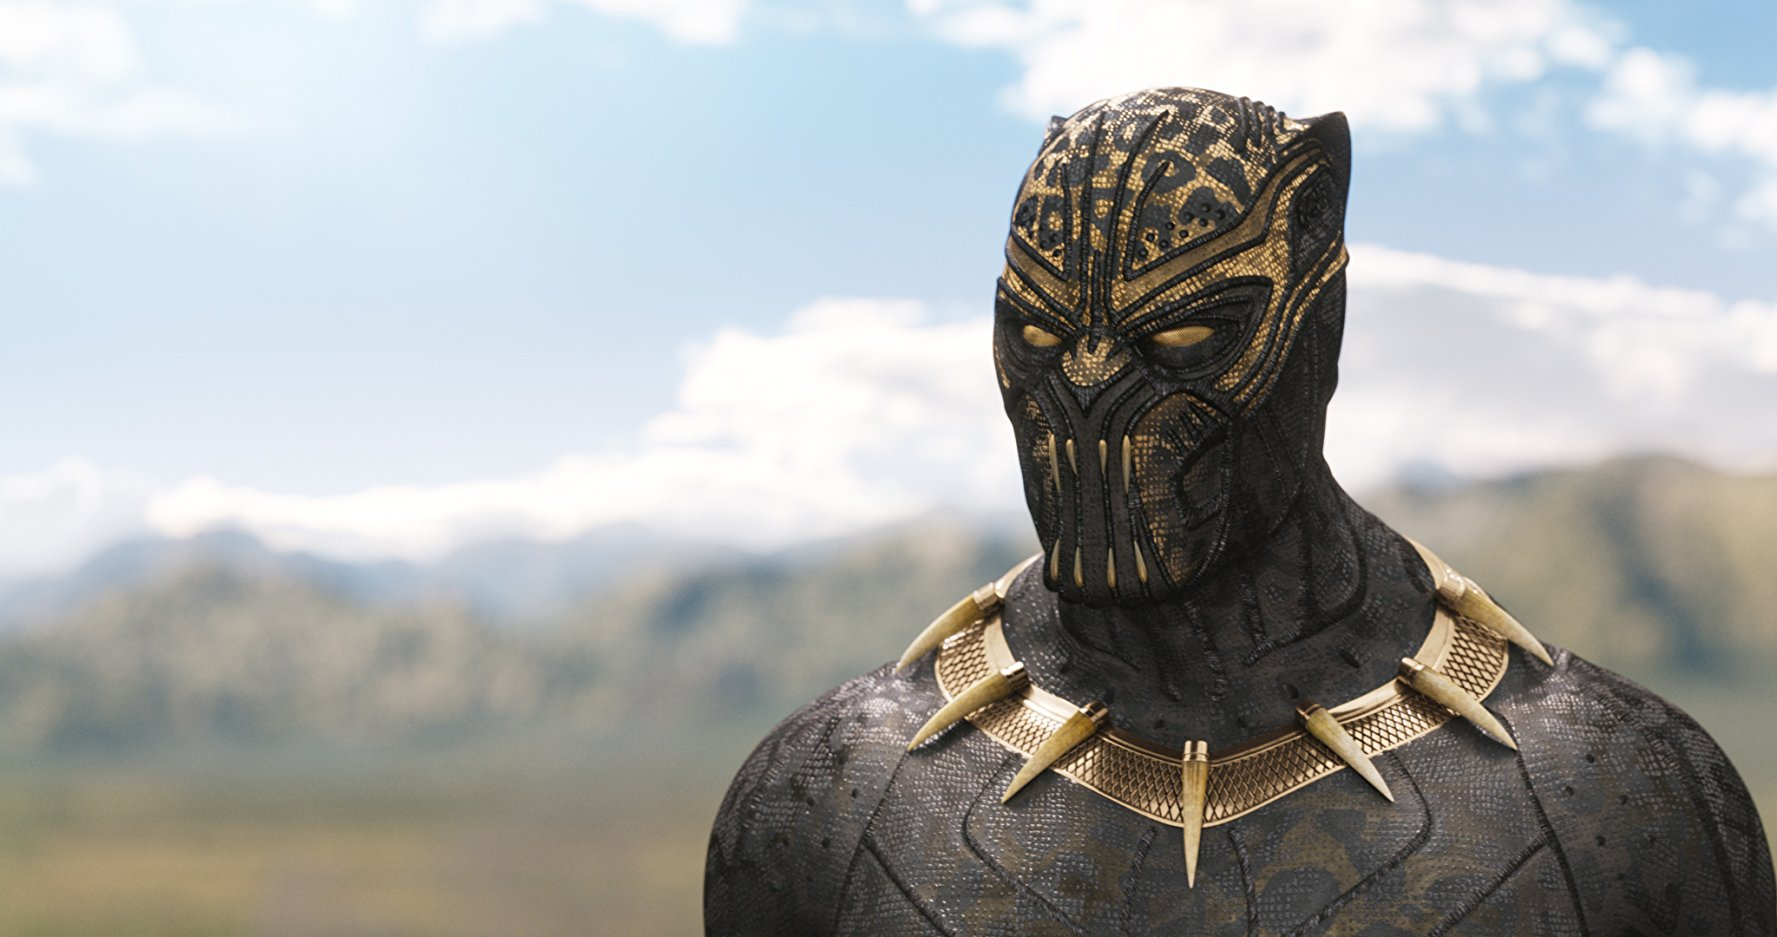 THE BLACK PANTHER,MARVEL